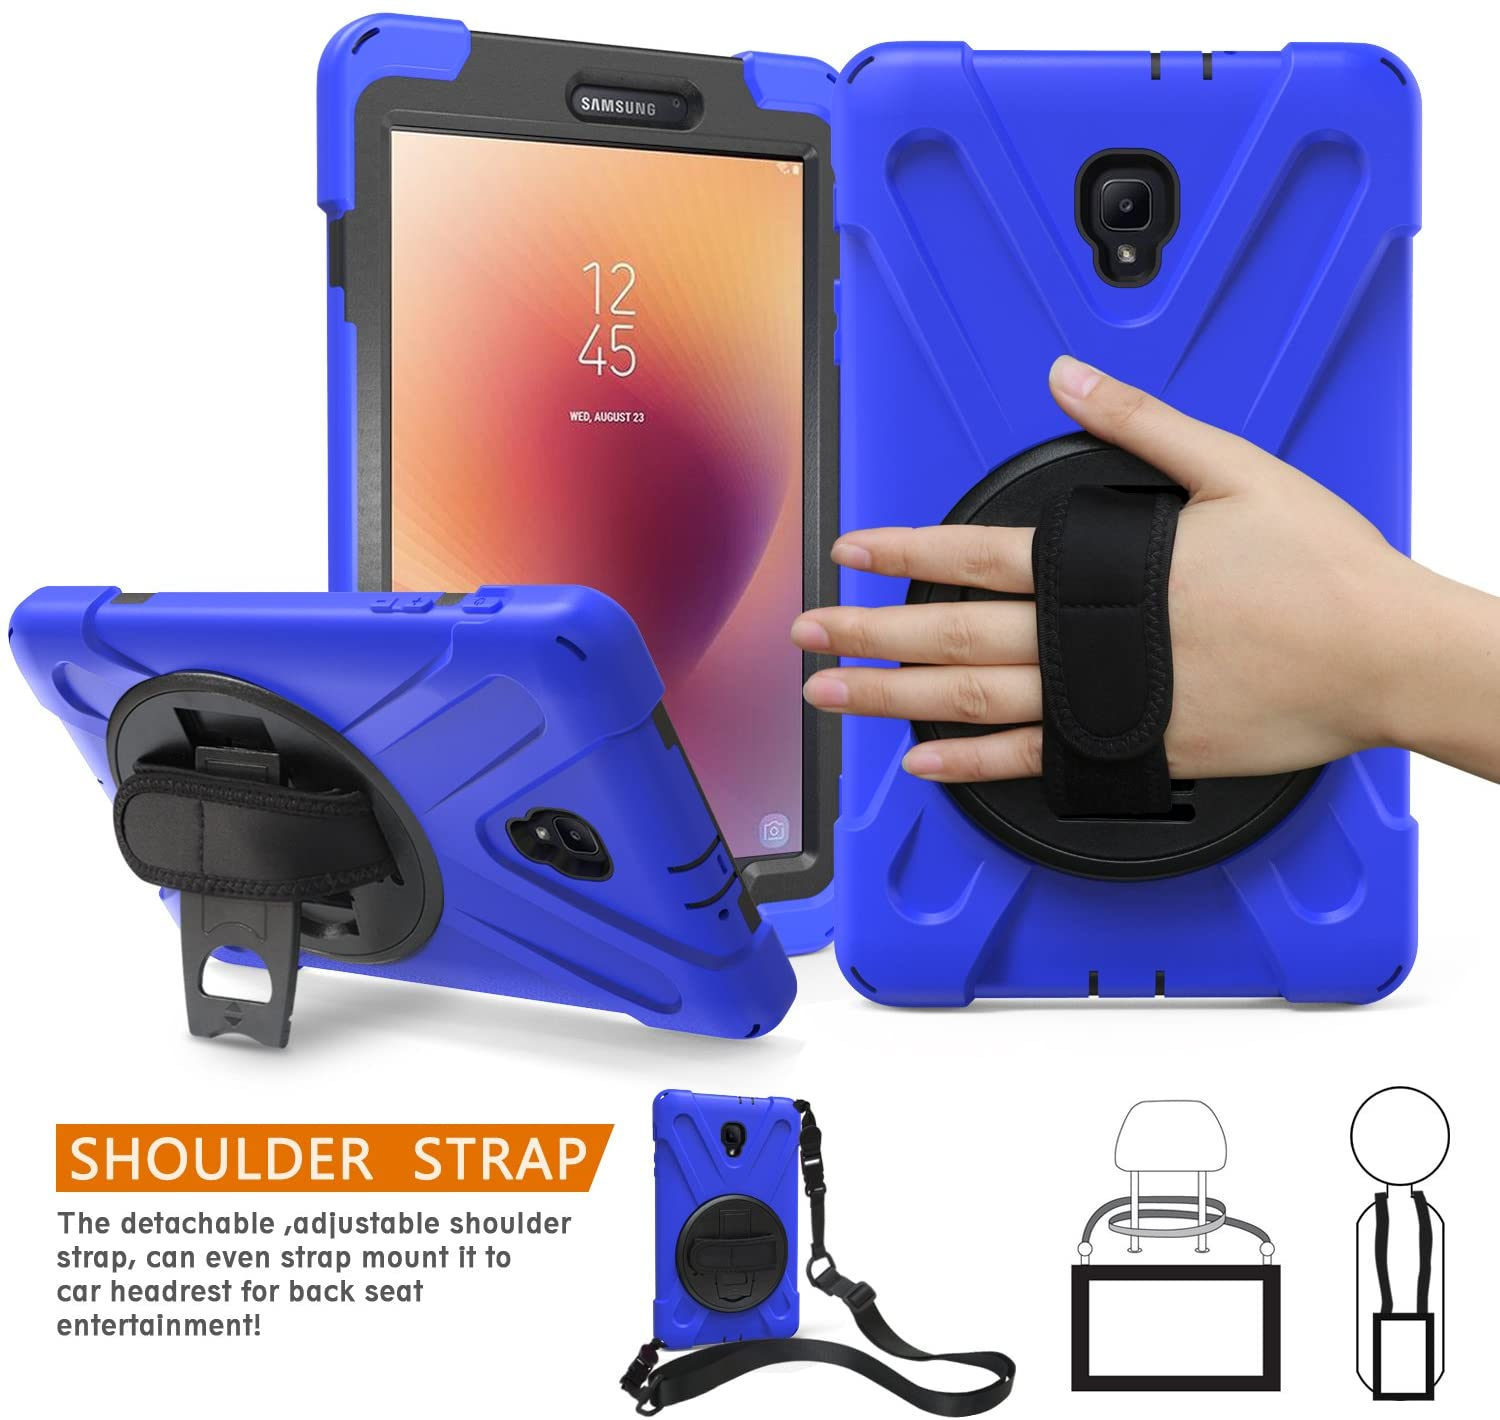 BRAECNstock Galaxy Tab A 8.0 2017 Case Three Layer Heavy Duty Soft Silicone Hard Bumper Case Shockproof Scratch Resistant Full-Body Protective Case for Tab a 8.0